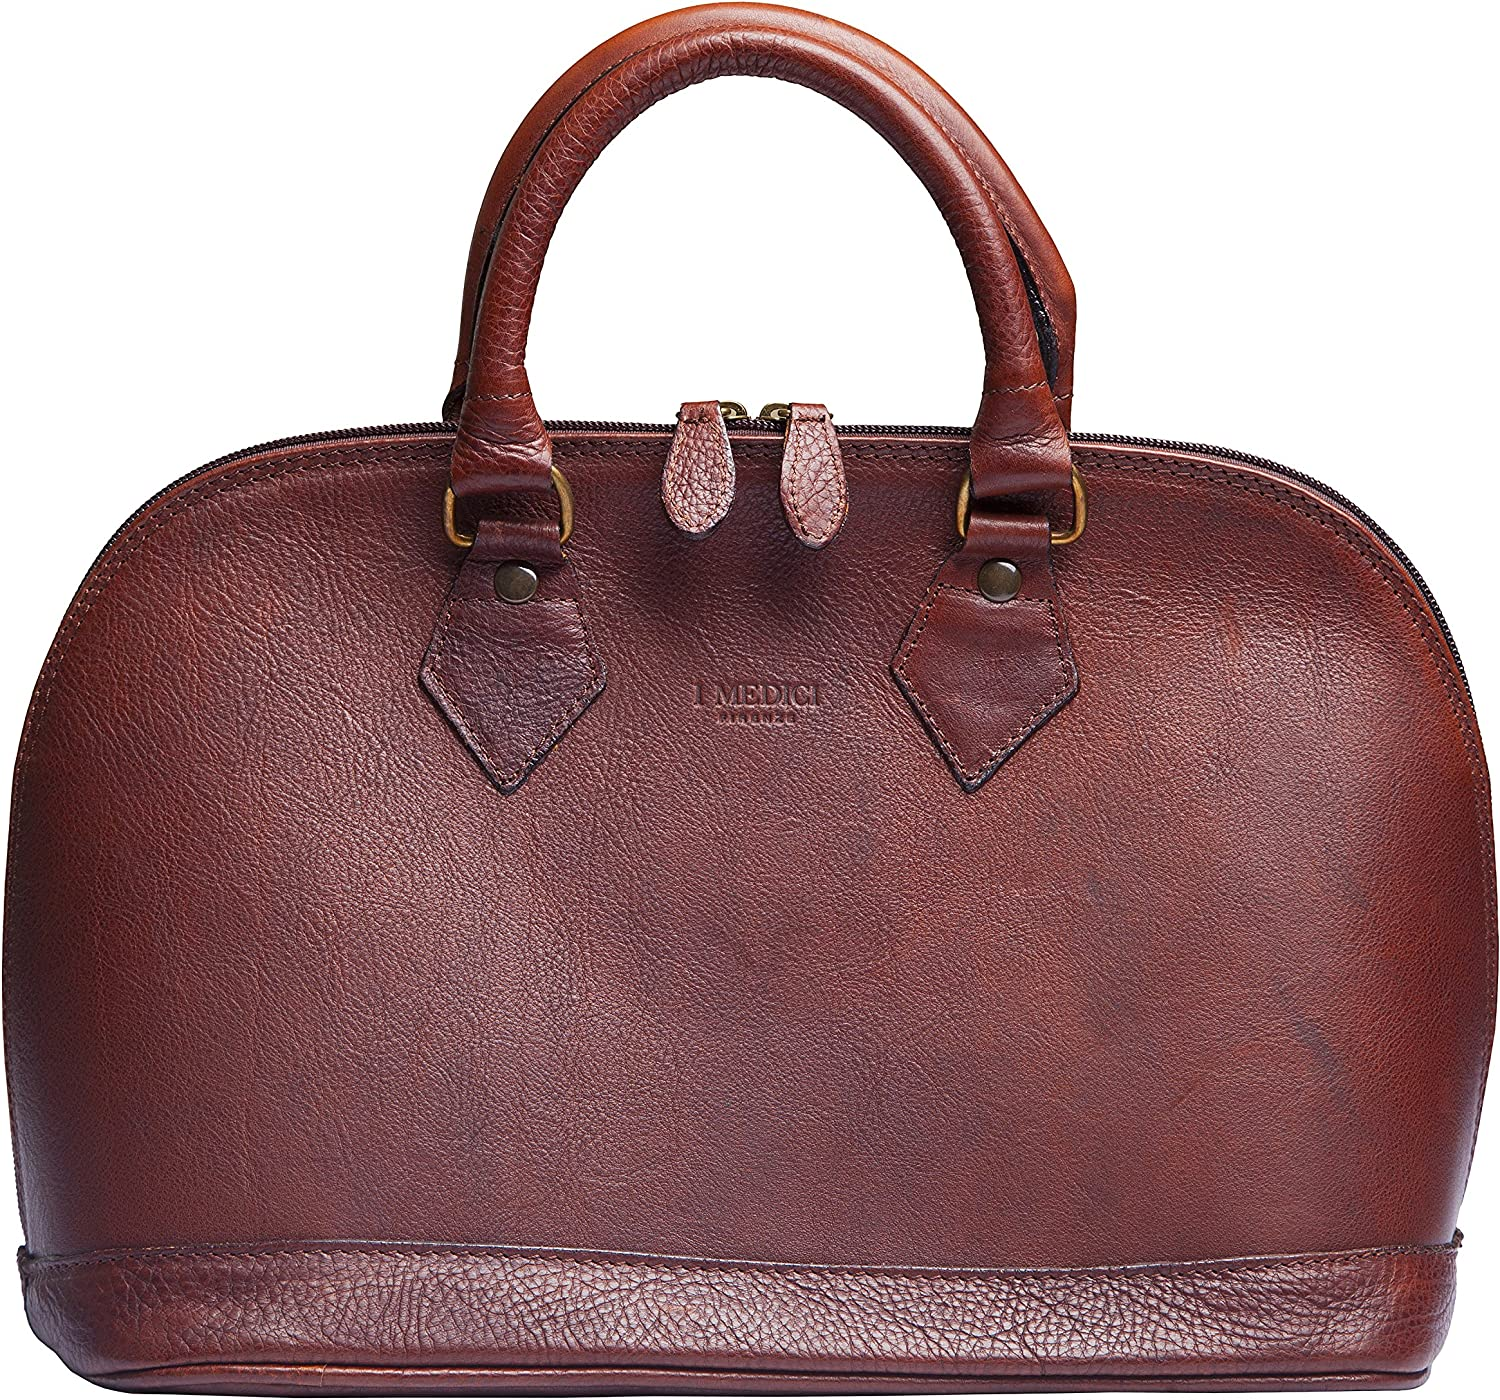 Italian Leather Handbags By I Medici  Brown 2500